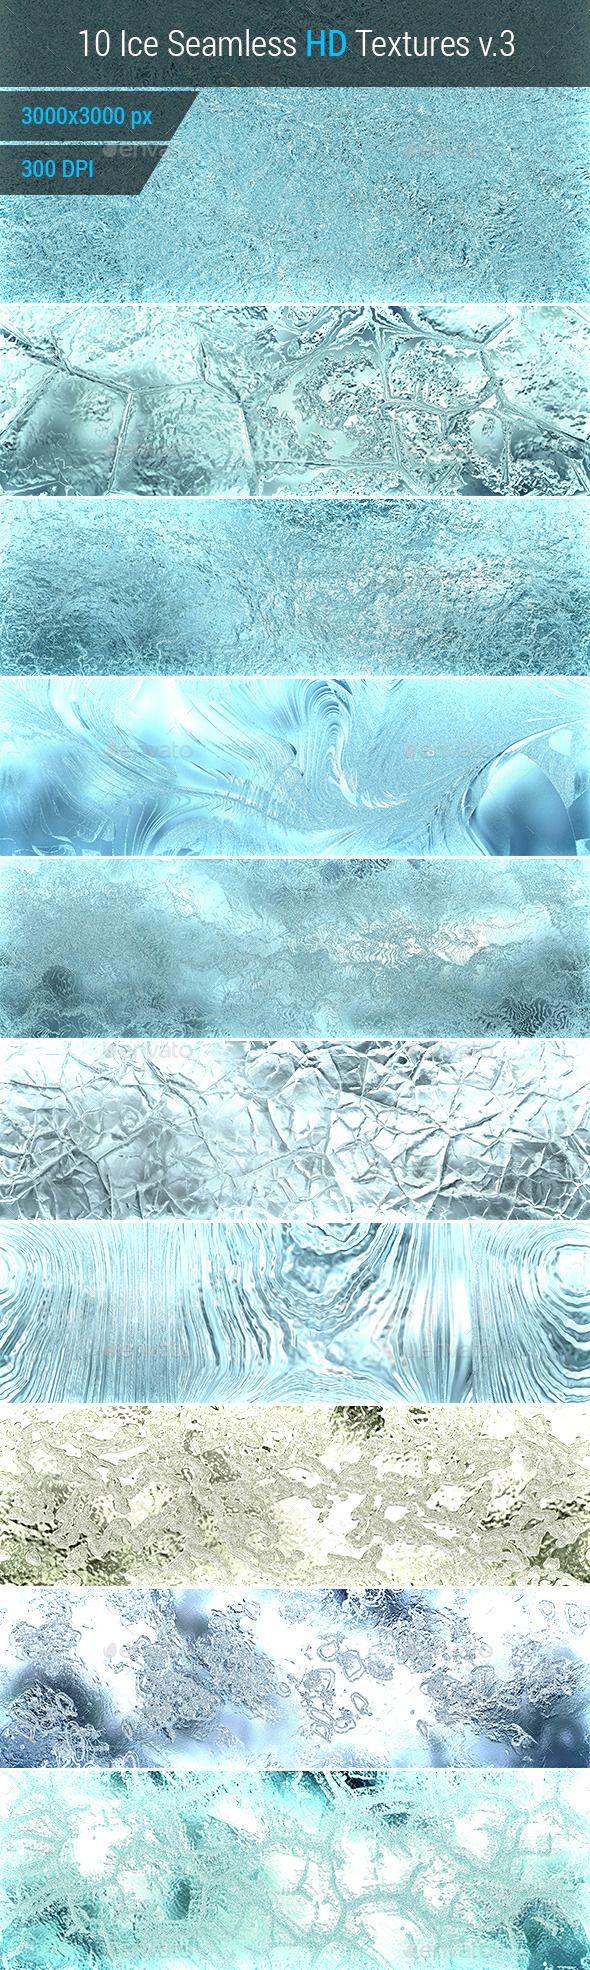 GraphicRiver Ice Seamless and Tileable Background Texture v.3 10193808